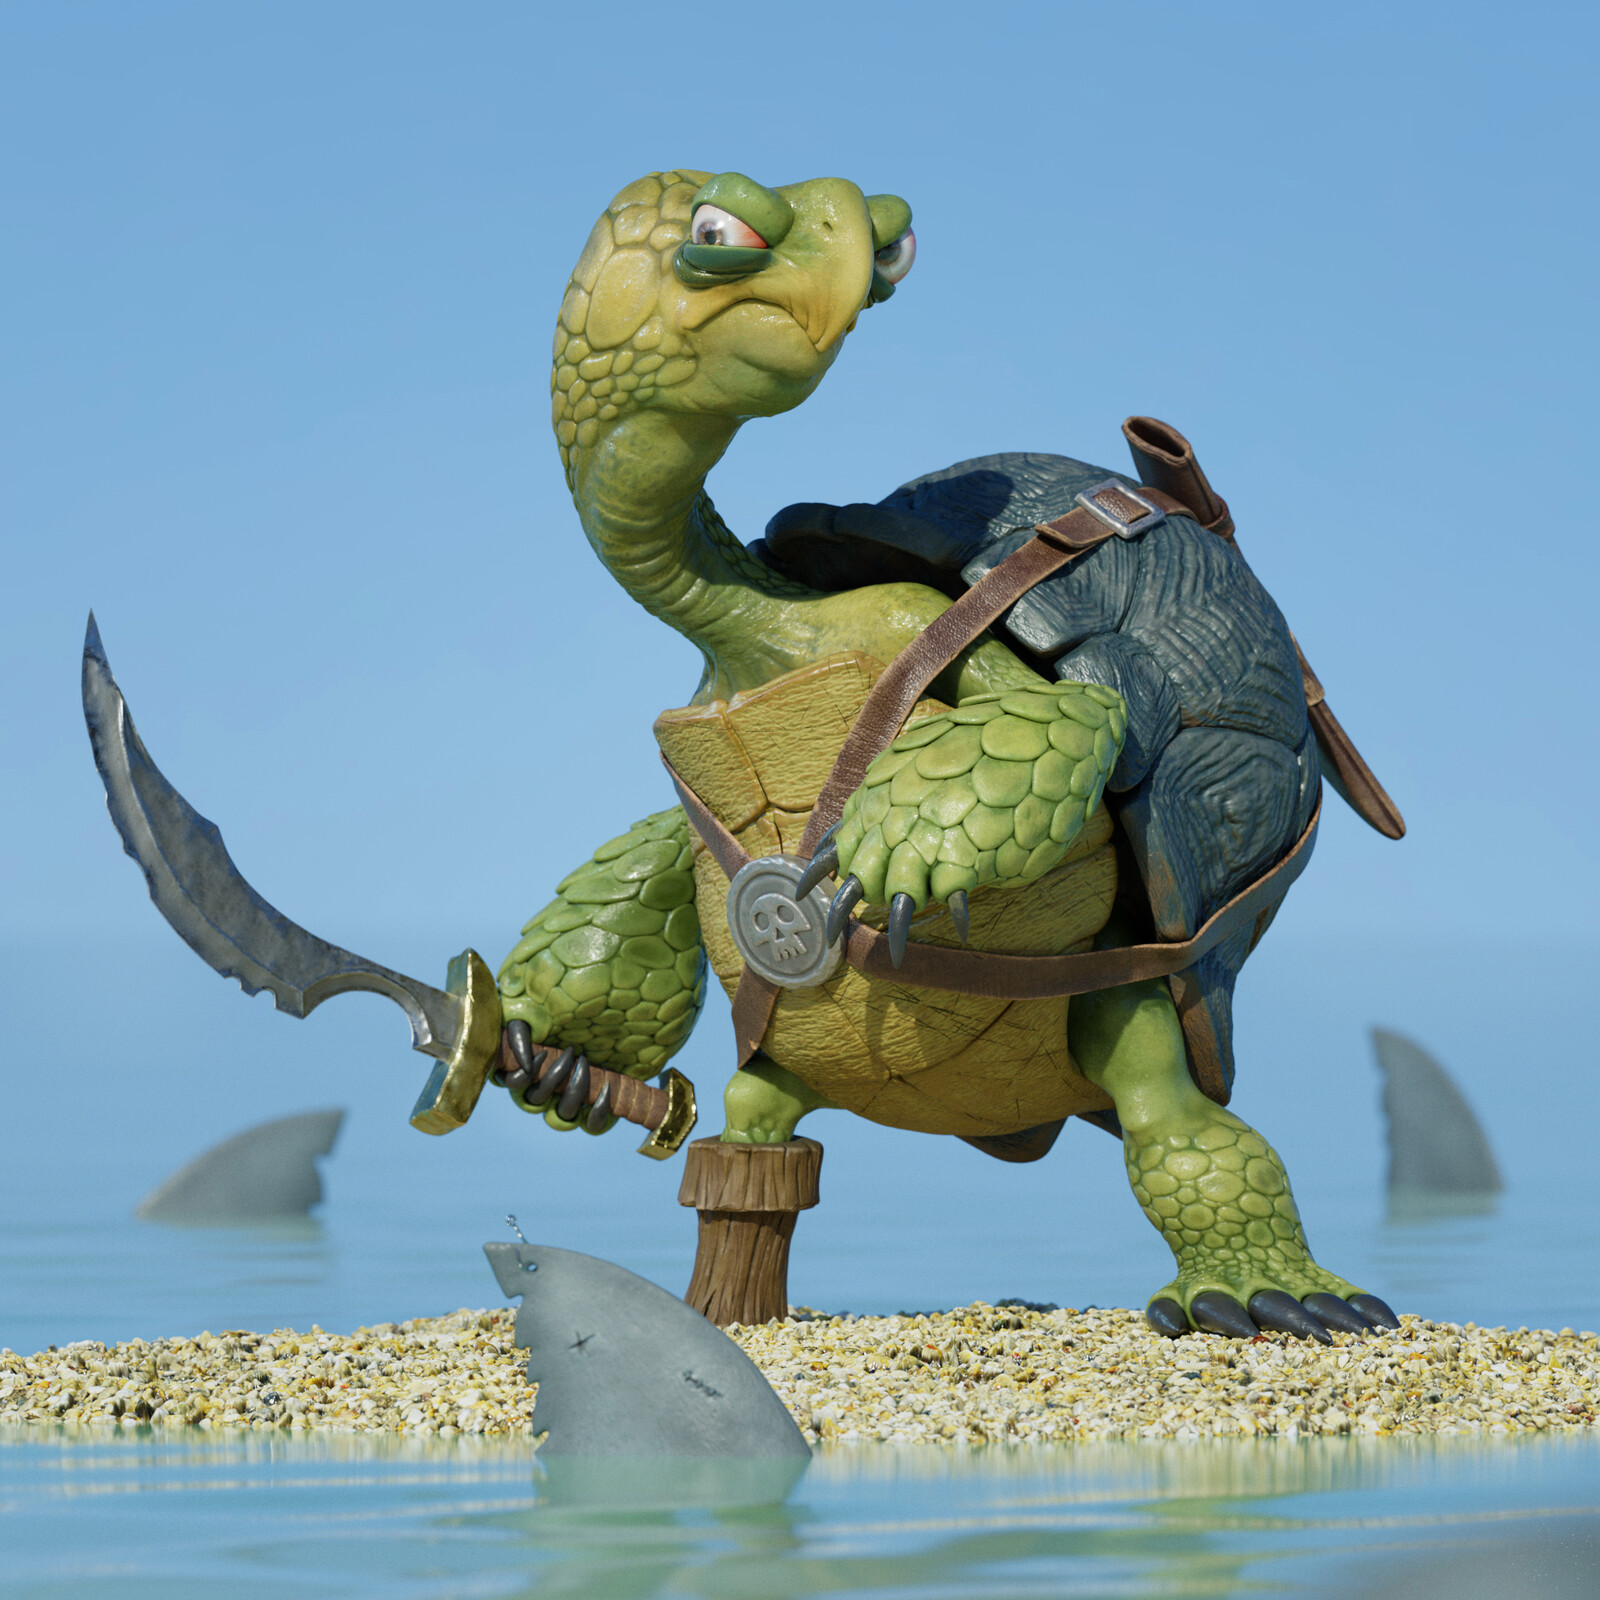 Pirate Turtle